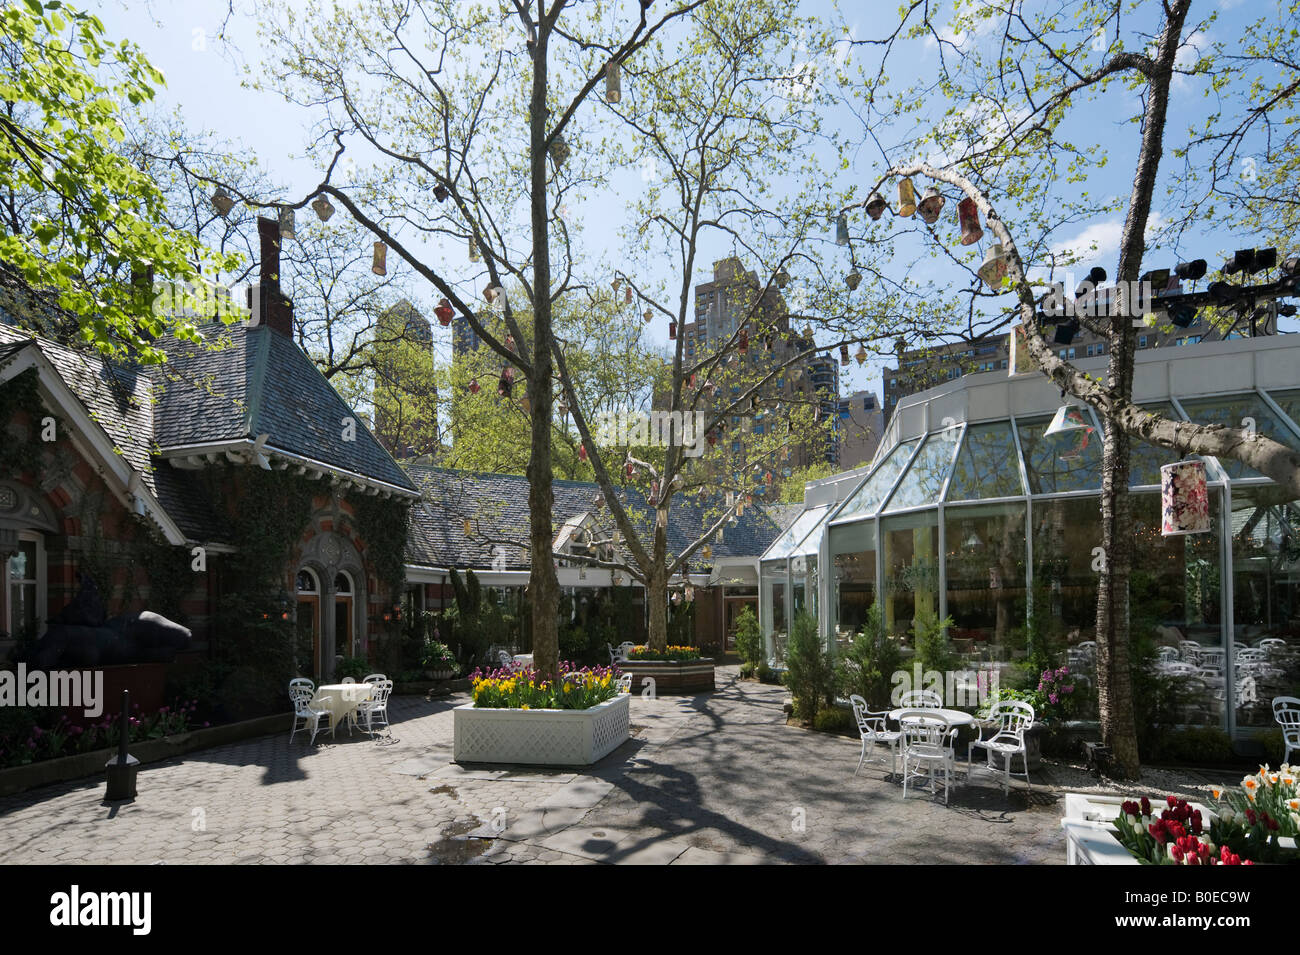 Tavern on the green restaurant central park manhattan for Cuisine on the green